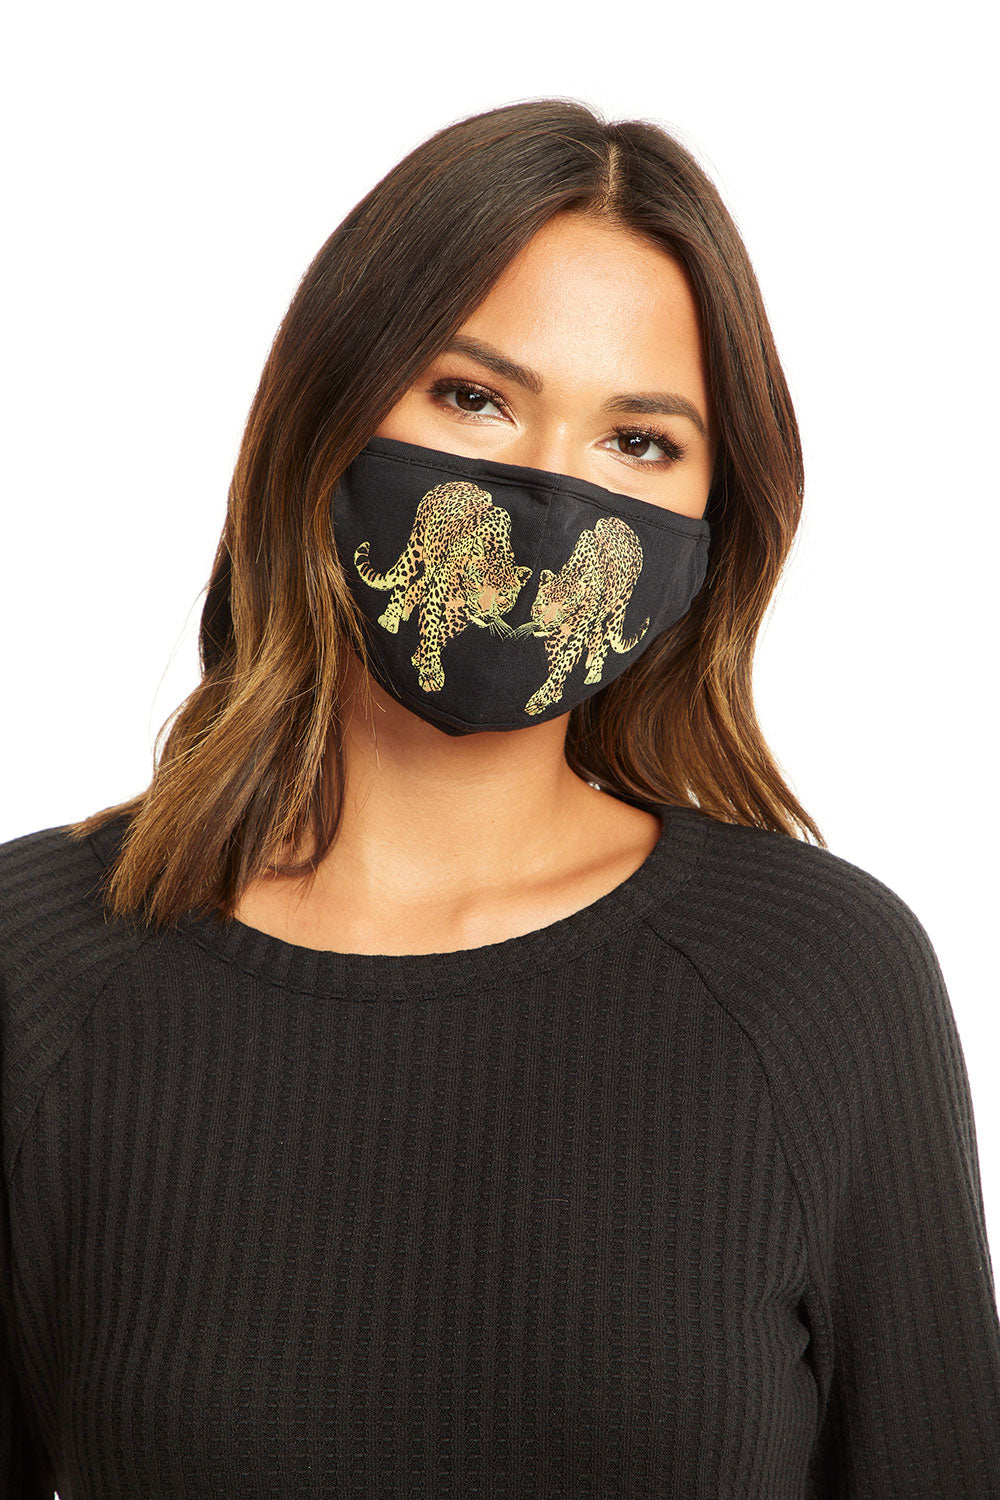 Reflected Leopards Mask MASKS chaserbrand4.myshopify.com